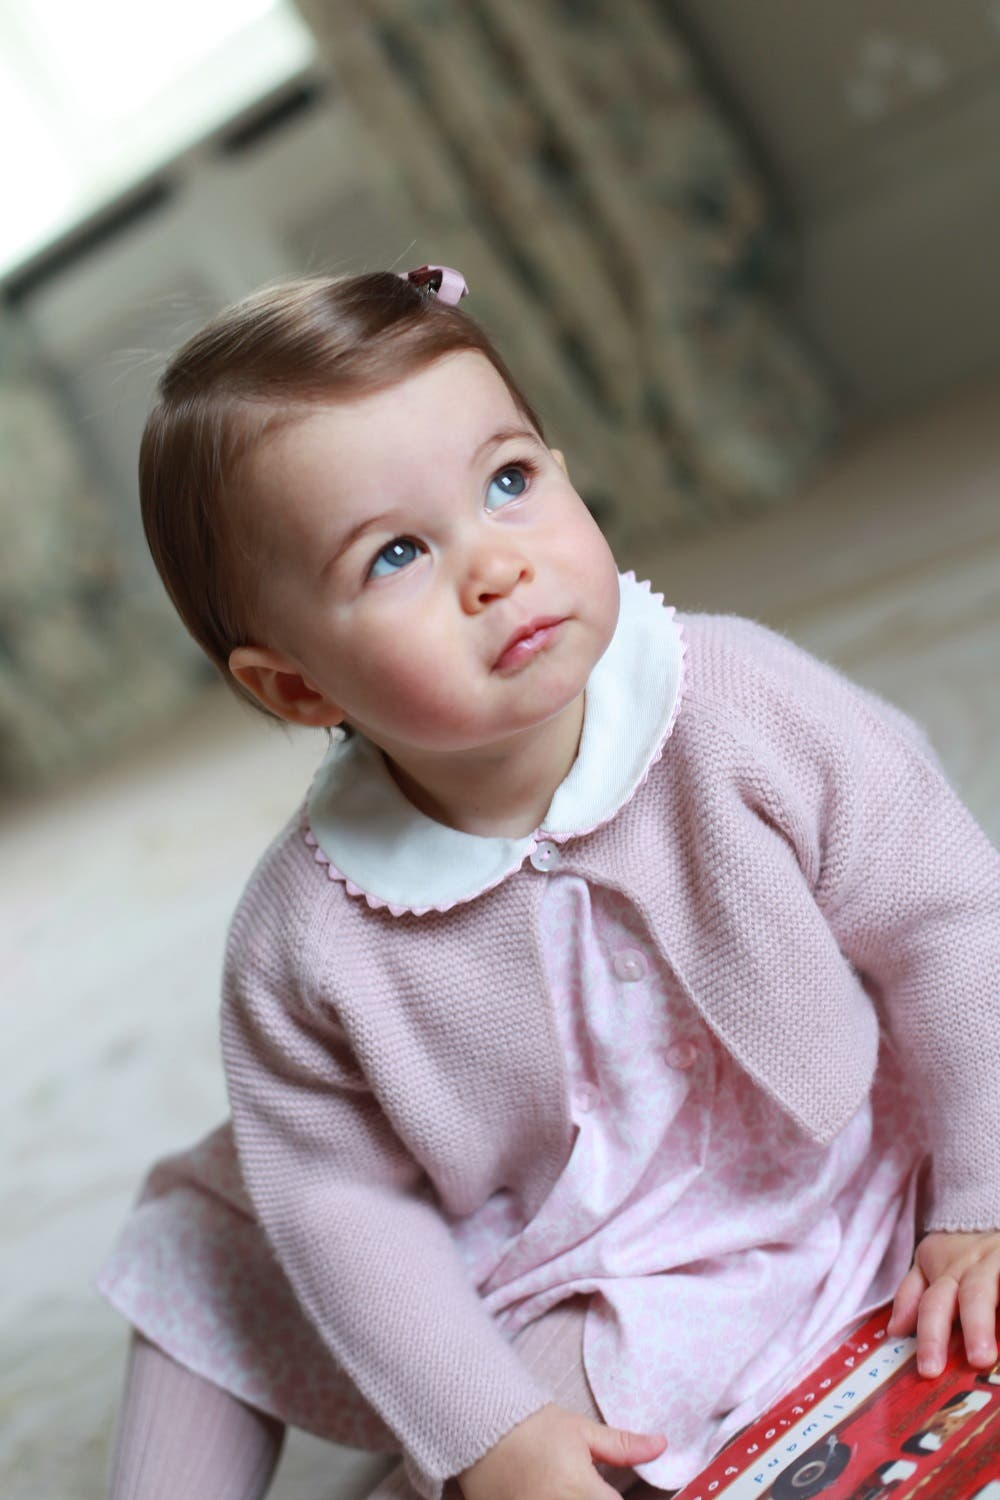 Britain's Princess Charlotte poses for a photograph, at Anmer Hall, in Norfolk, England. (Photo: Kate, the Duchess of Cambridge/Kensington Palace via AP)